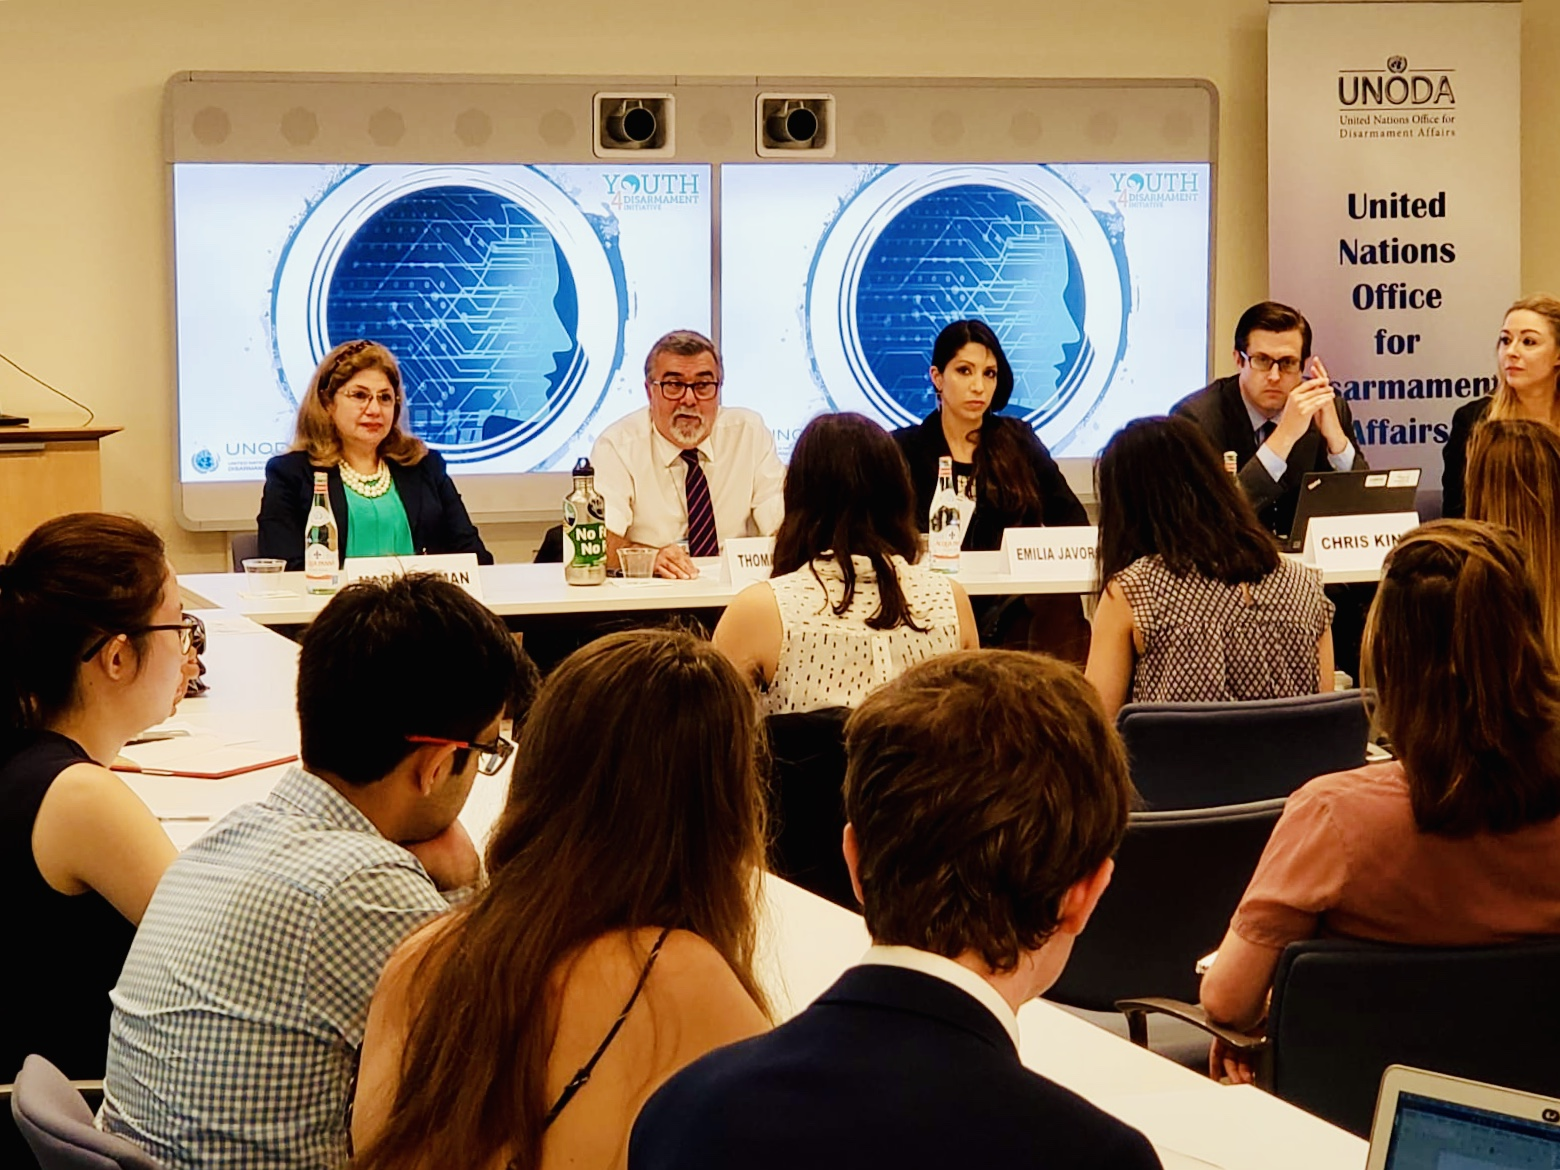 UNODA launches 'Youth4Disarmament' Initiative with dialogue on artificial intelligence and international security – UNODA